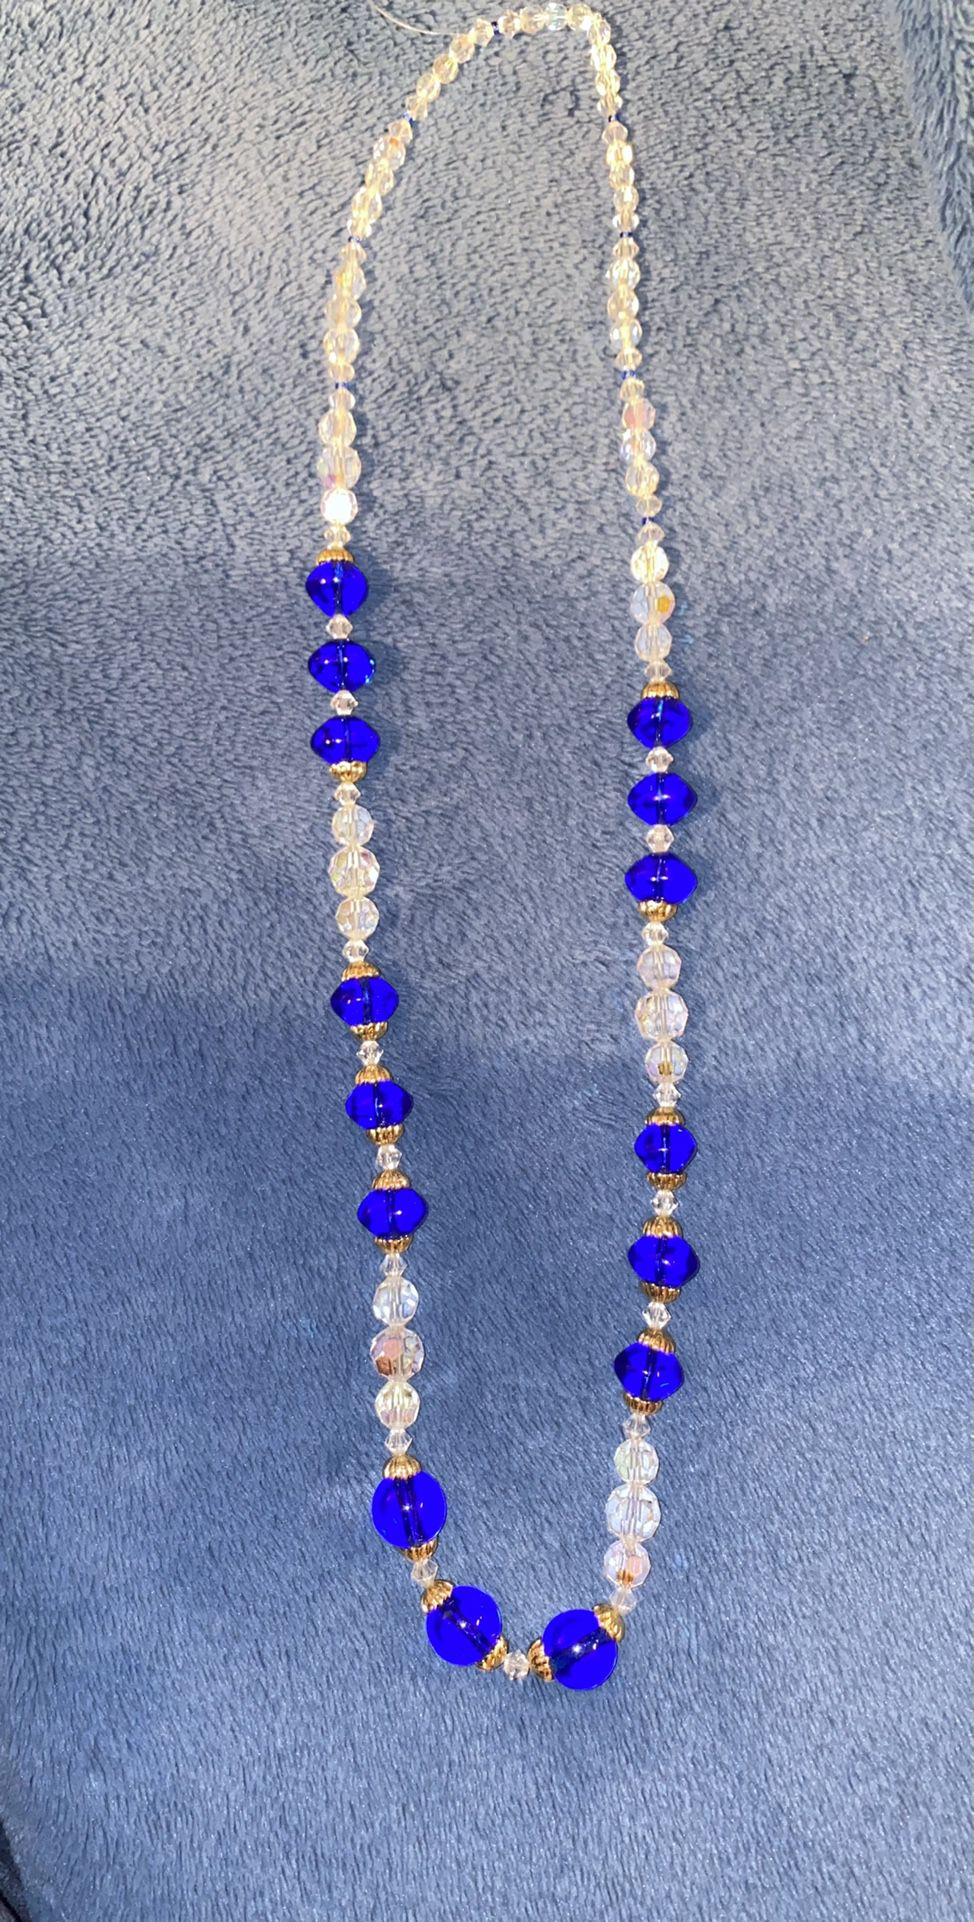 Beaded Sparkly Necklace!